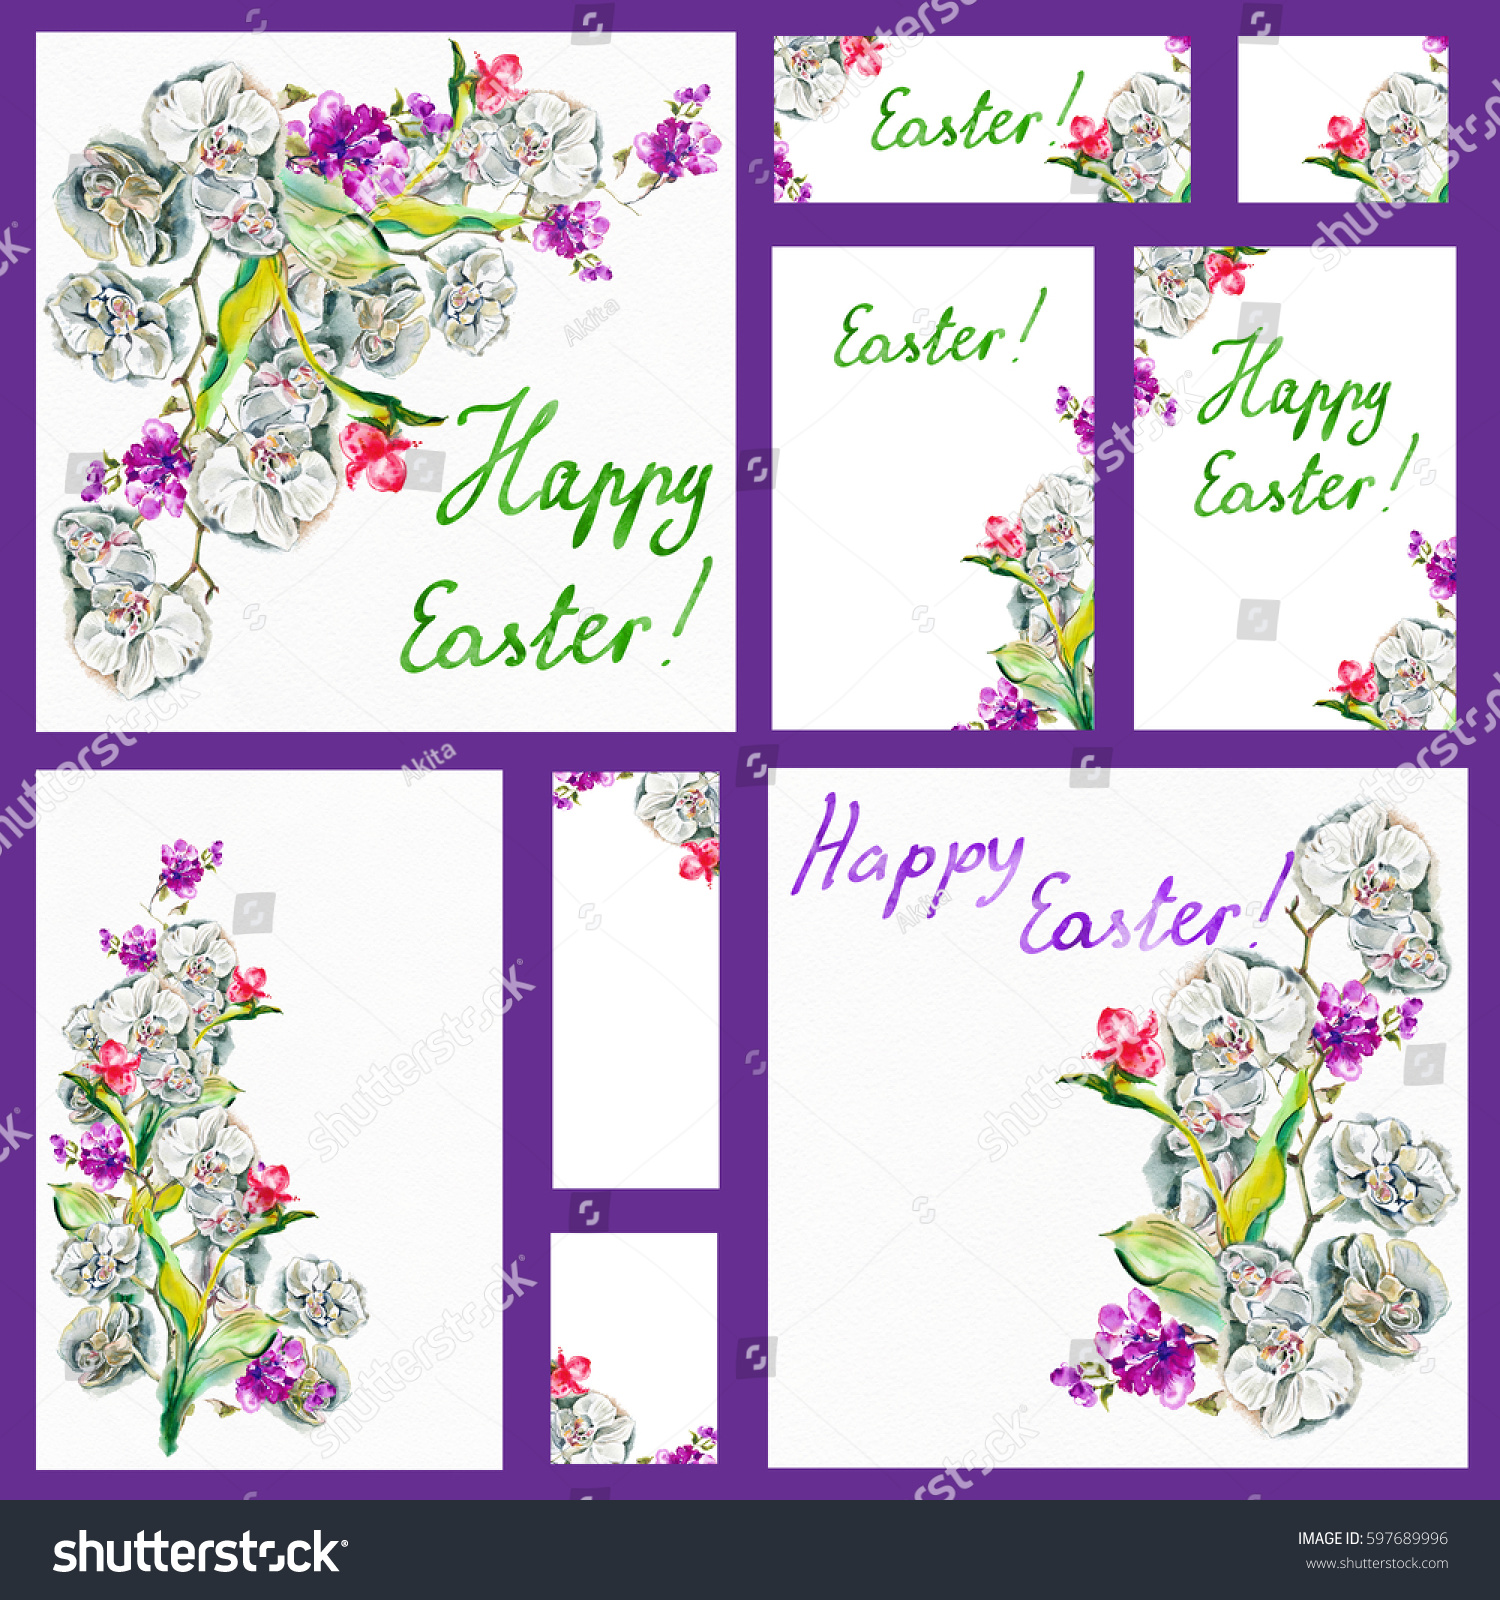 Happy Easter Easter Frame Hand Drawn Black Stock Illustration ...